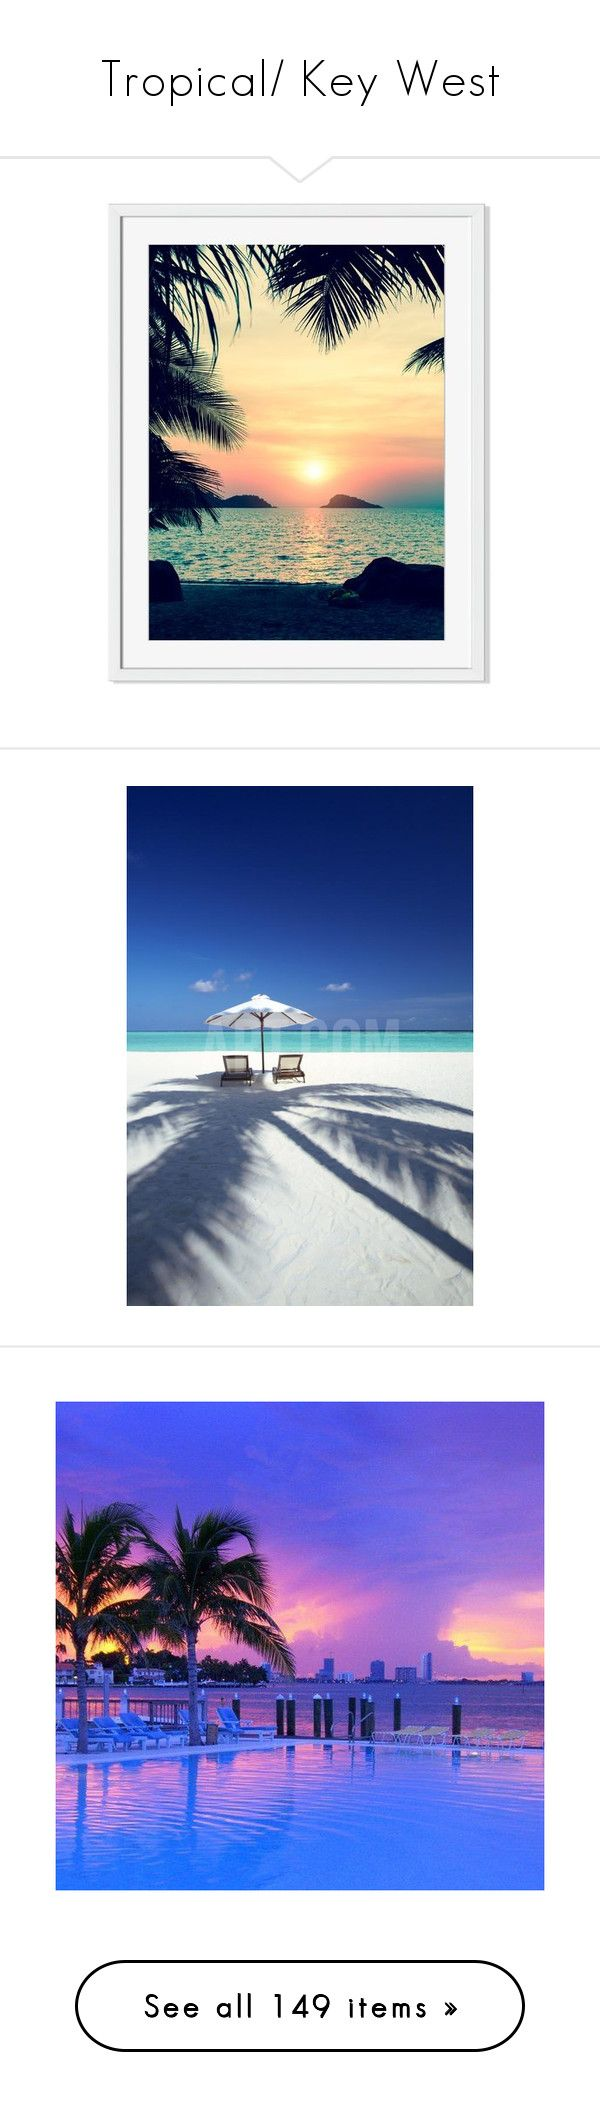 """""""Tropical/ Key West"""" by kristy-corbin ❤ liked on Polyvore featuring home, home decor, wall art, backgrounds, photographic wall art, photography wall art, tropical home decor, beach home accessories, beach scene wall art and beach wall art"""